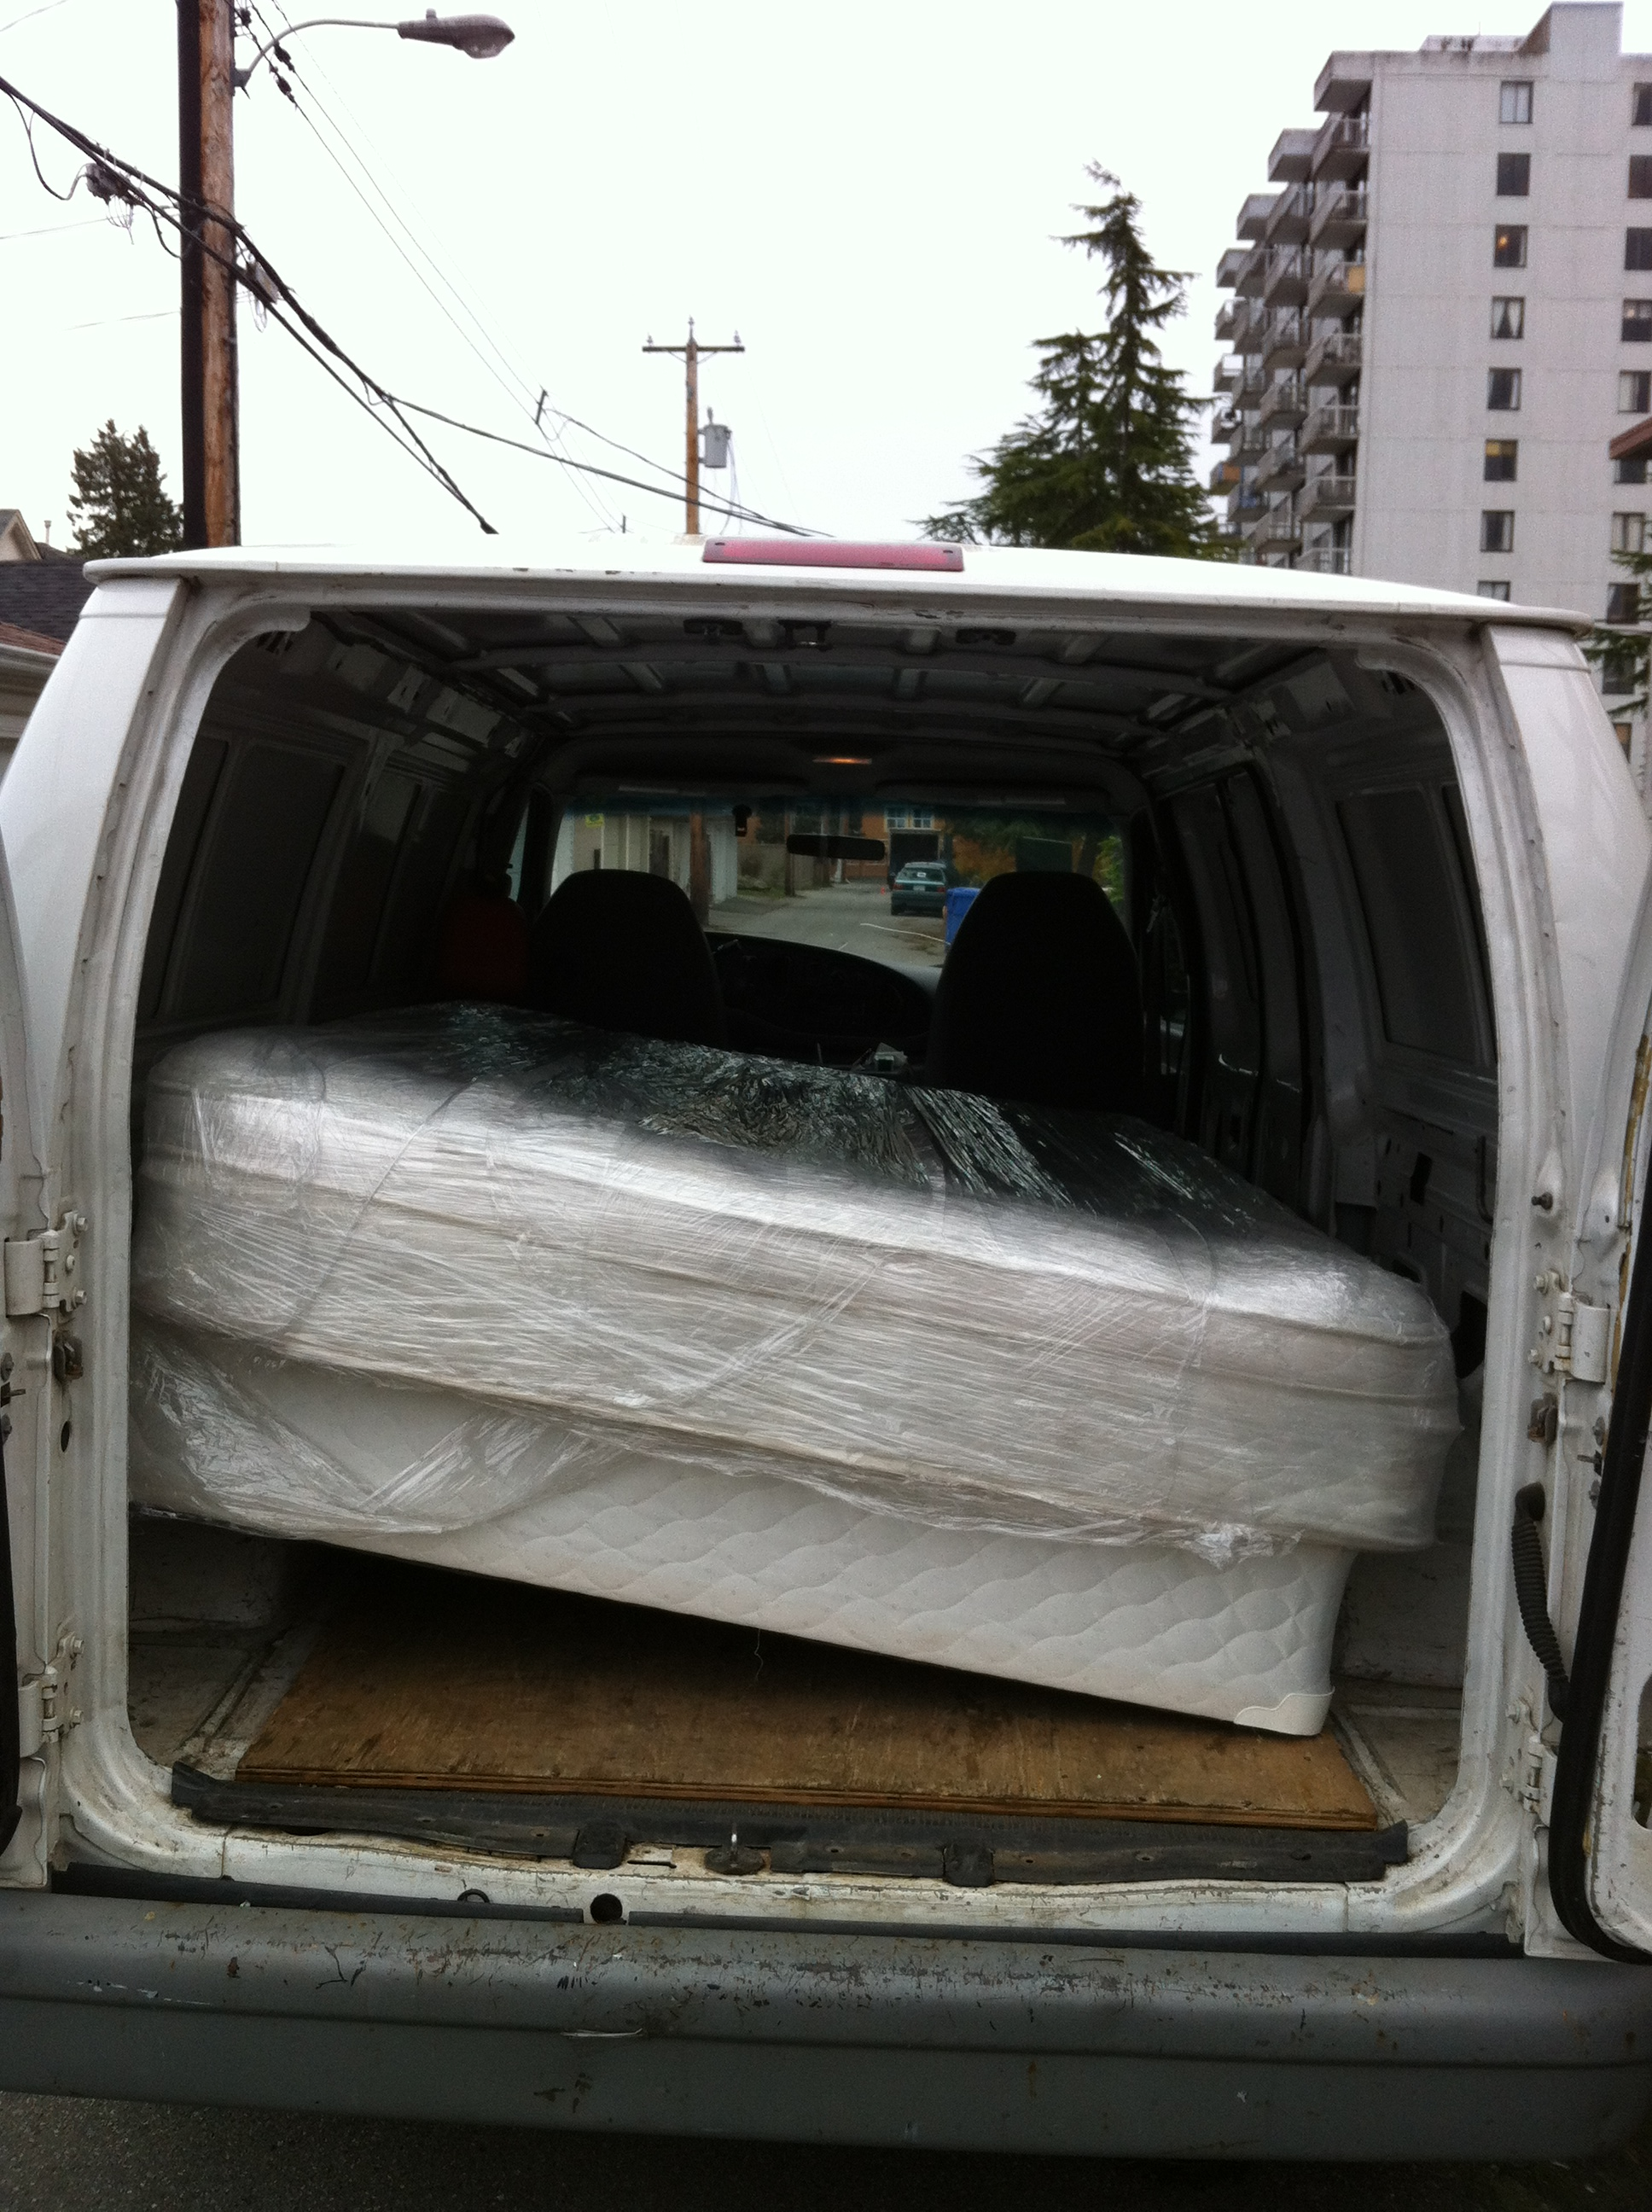 Eq3 delivery in vancouver mattresses and box springs for Affordable modern furniture vancouver